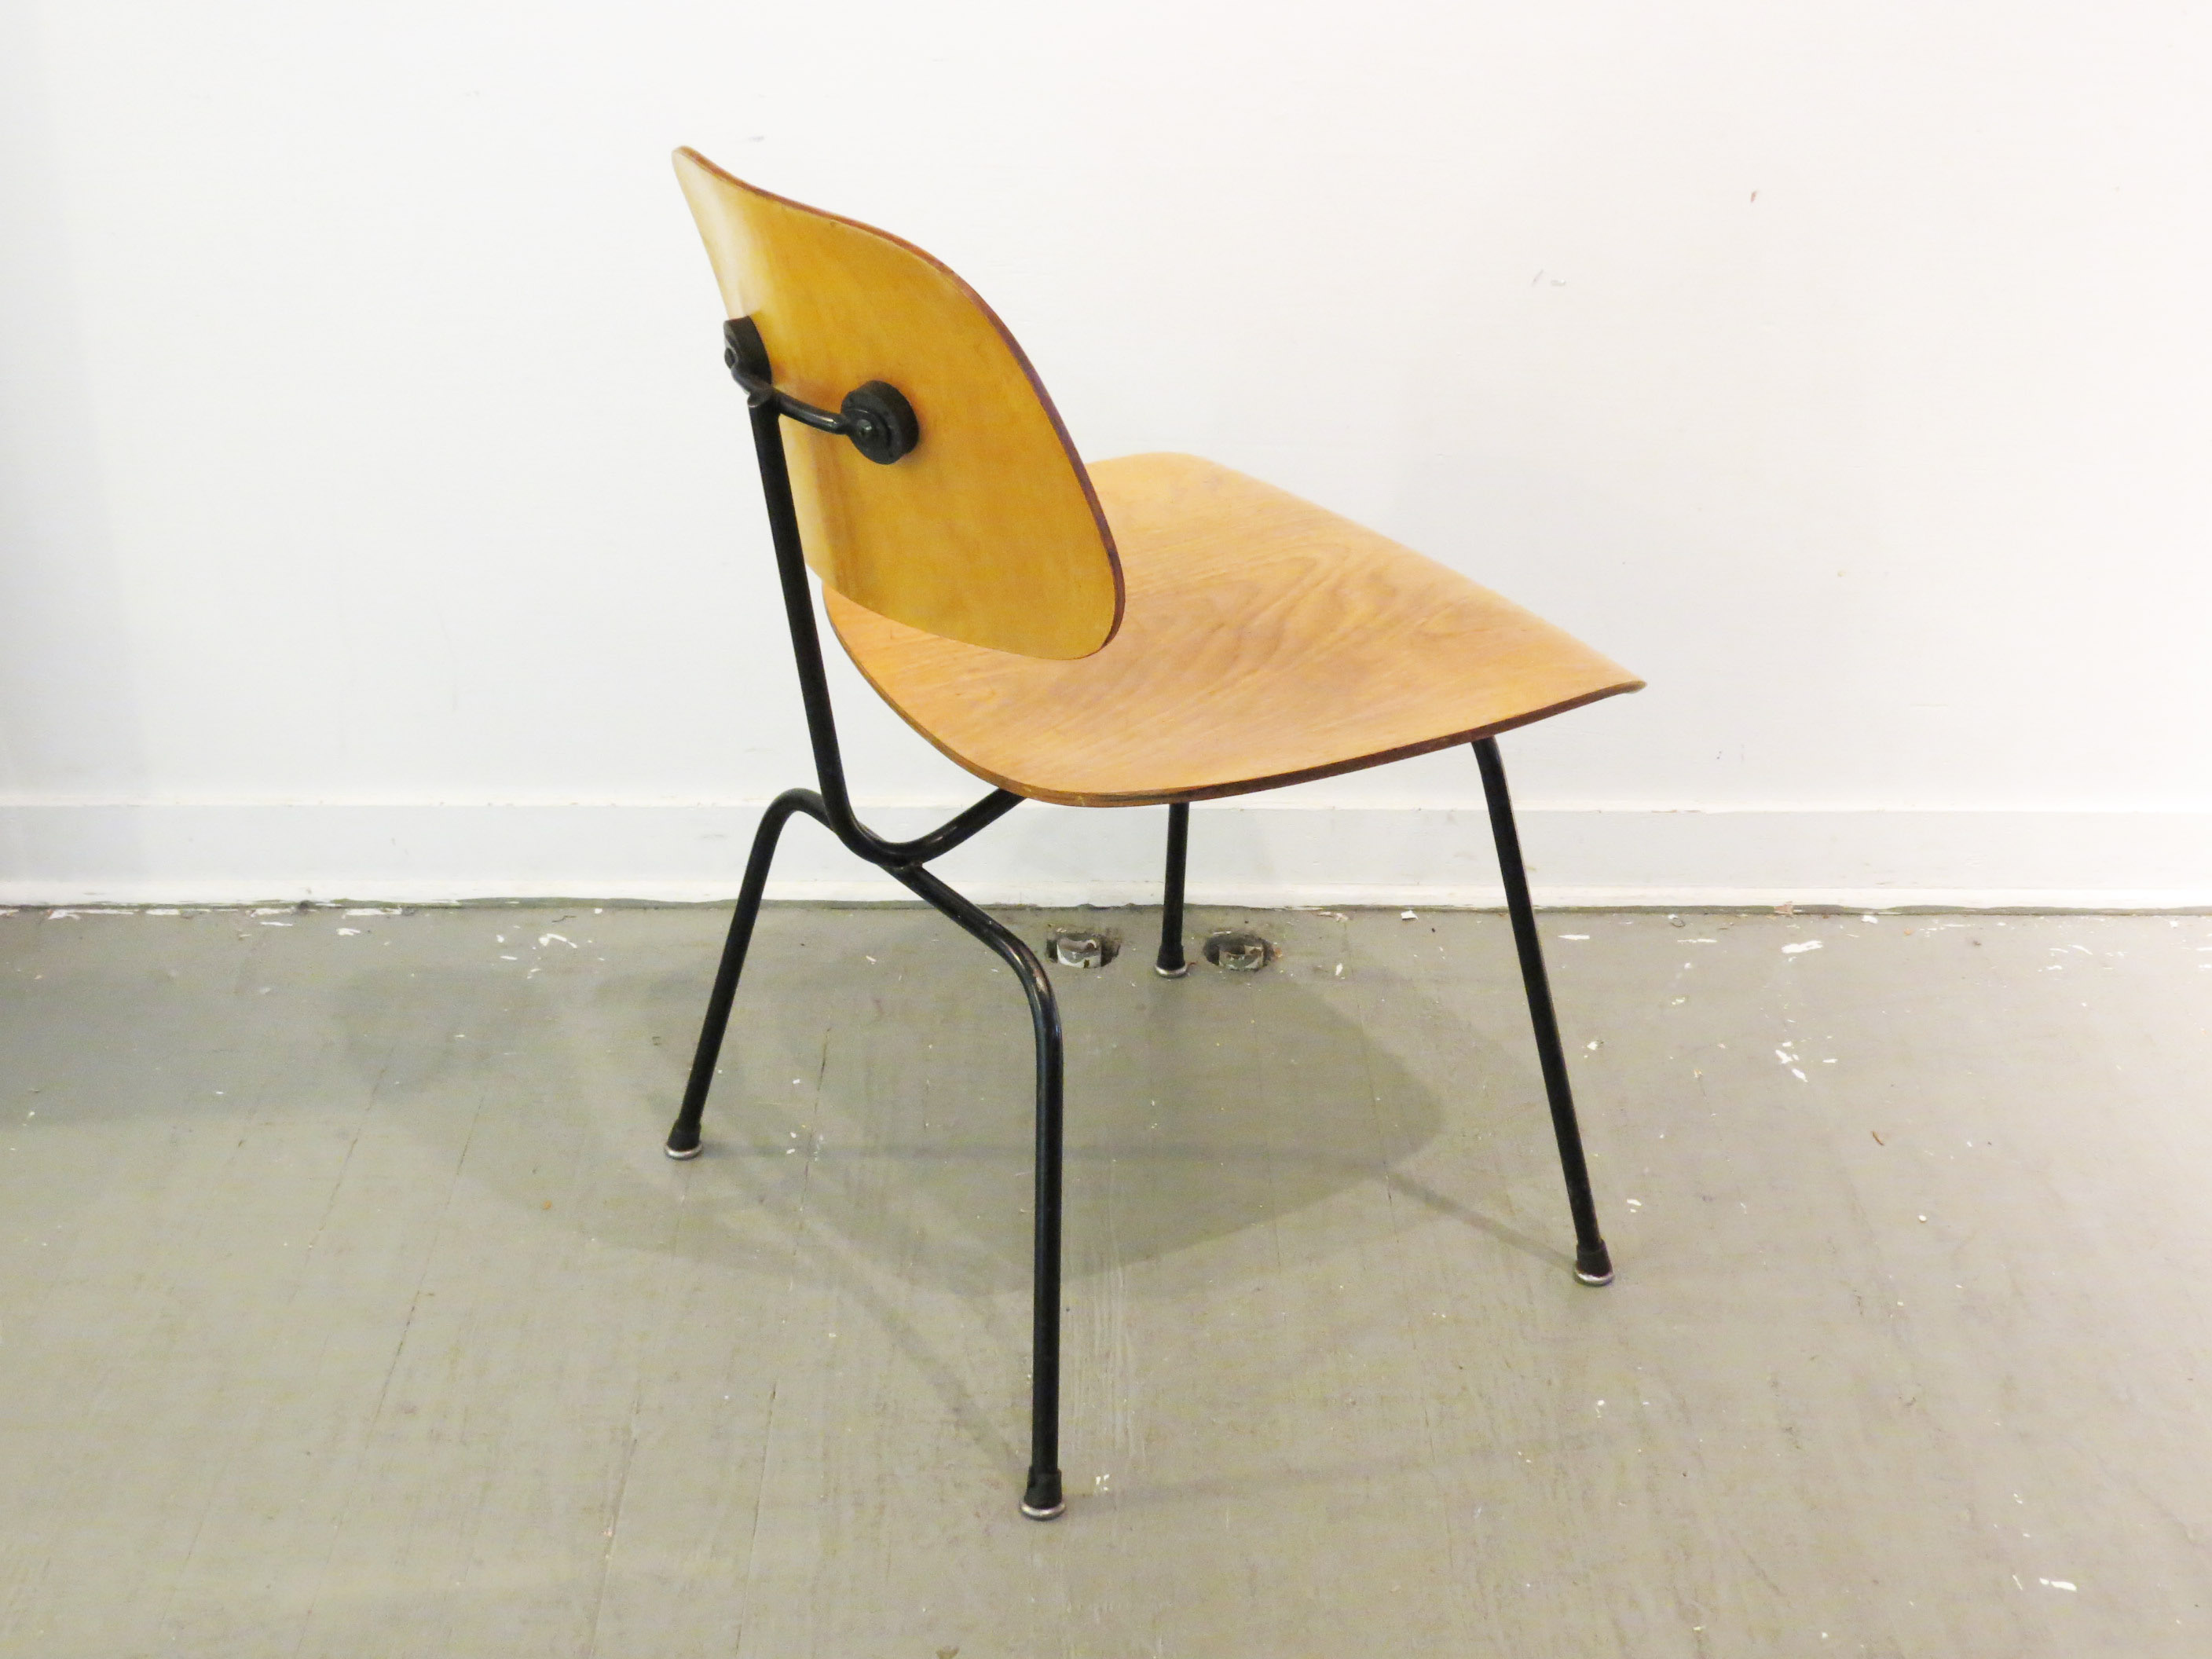 Vintage Eames Molded Plywood Dining Chair